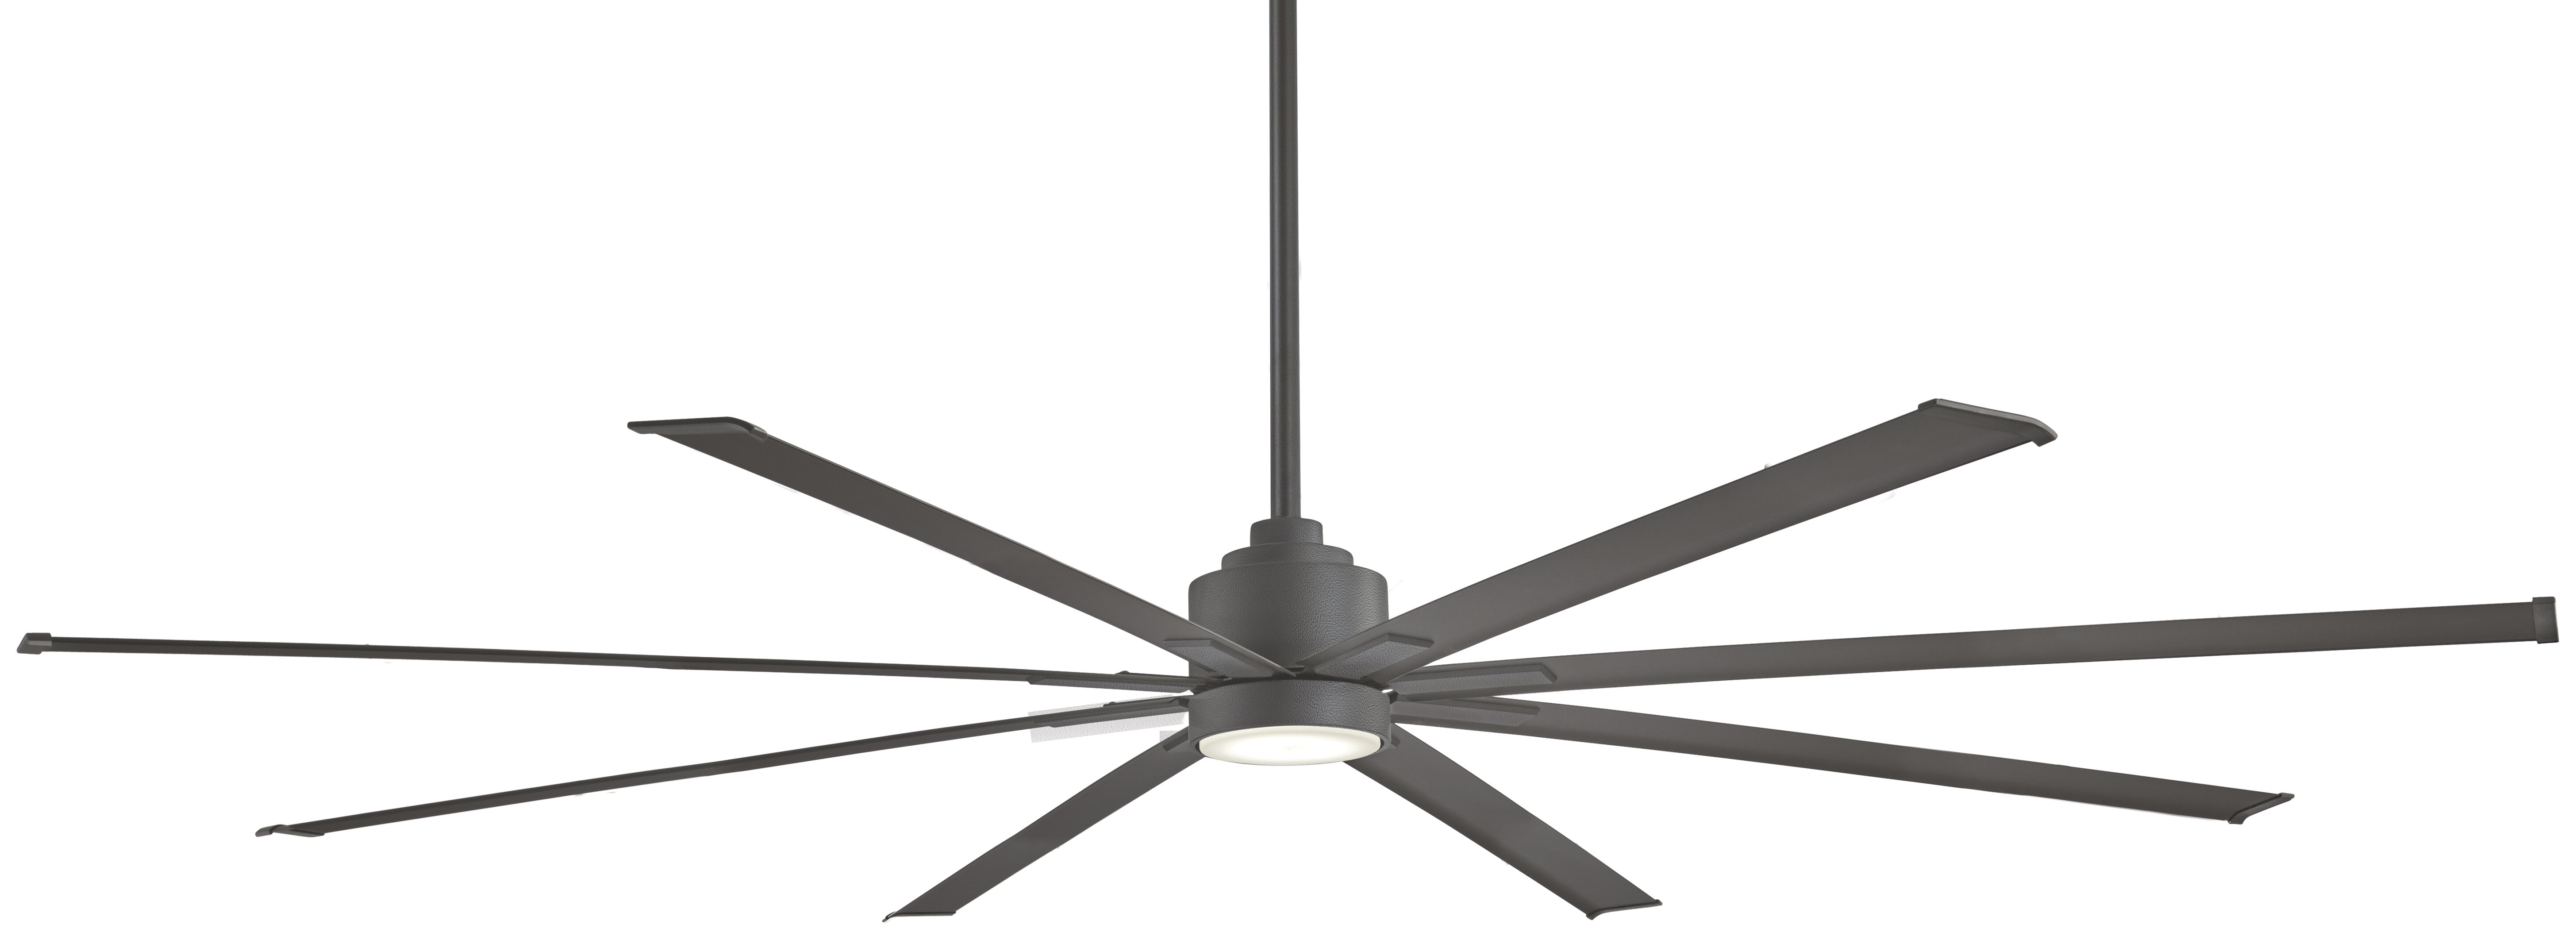 Minka aire 84 xtreme 8 outdoor ceiling fan with remote reviews minka aire 84 xtreme 8 outdoor ceiling fan with remote reviews wayfair aloadofball Images